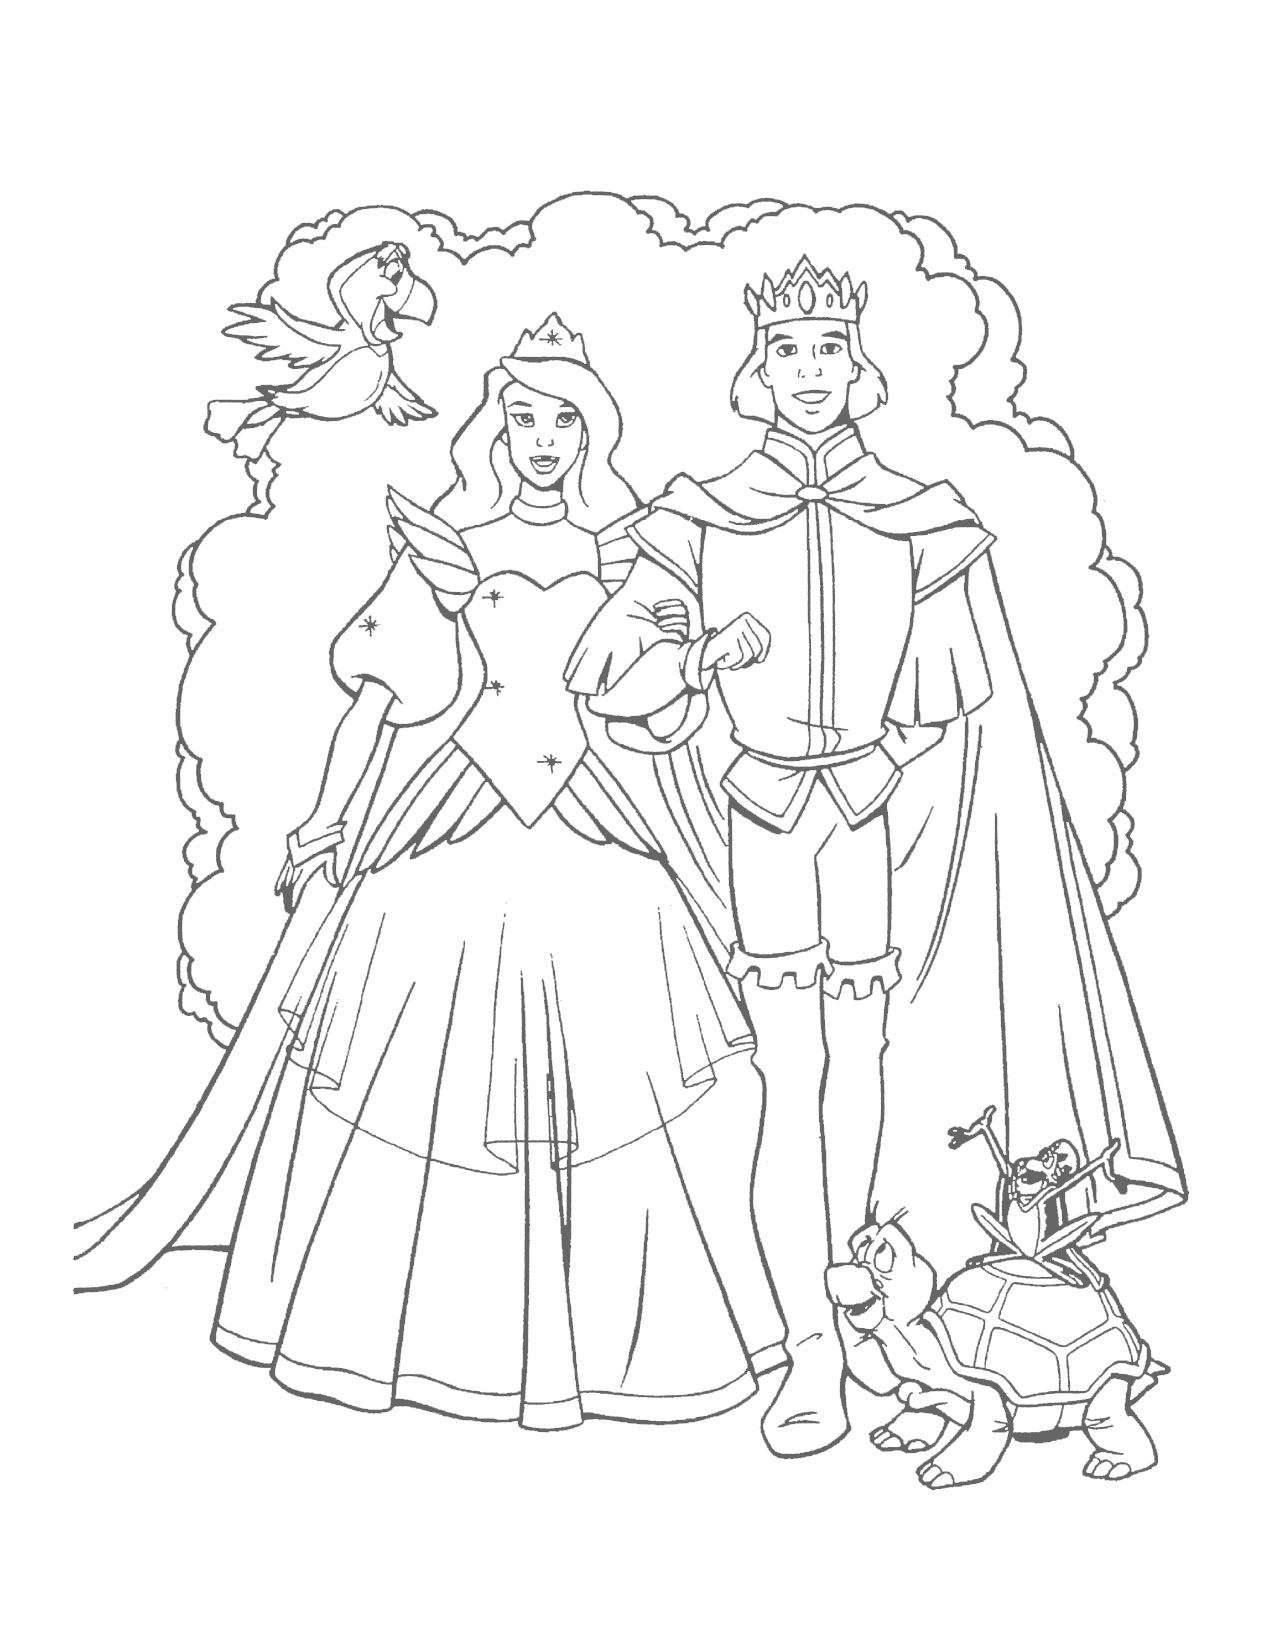 Swan Princess Odette and Prince Derek wedding coloring page